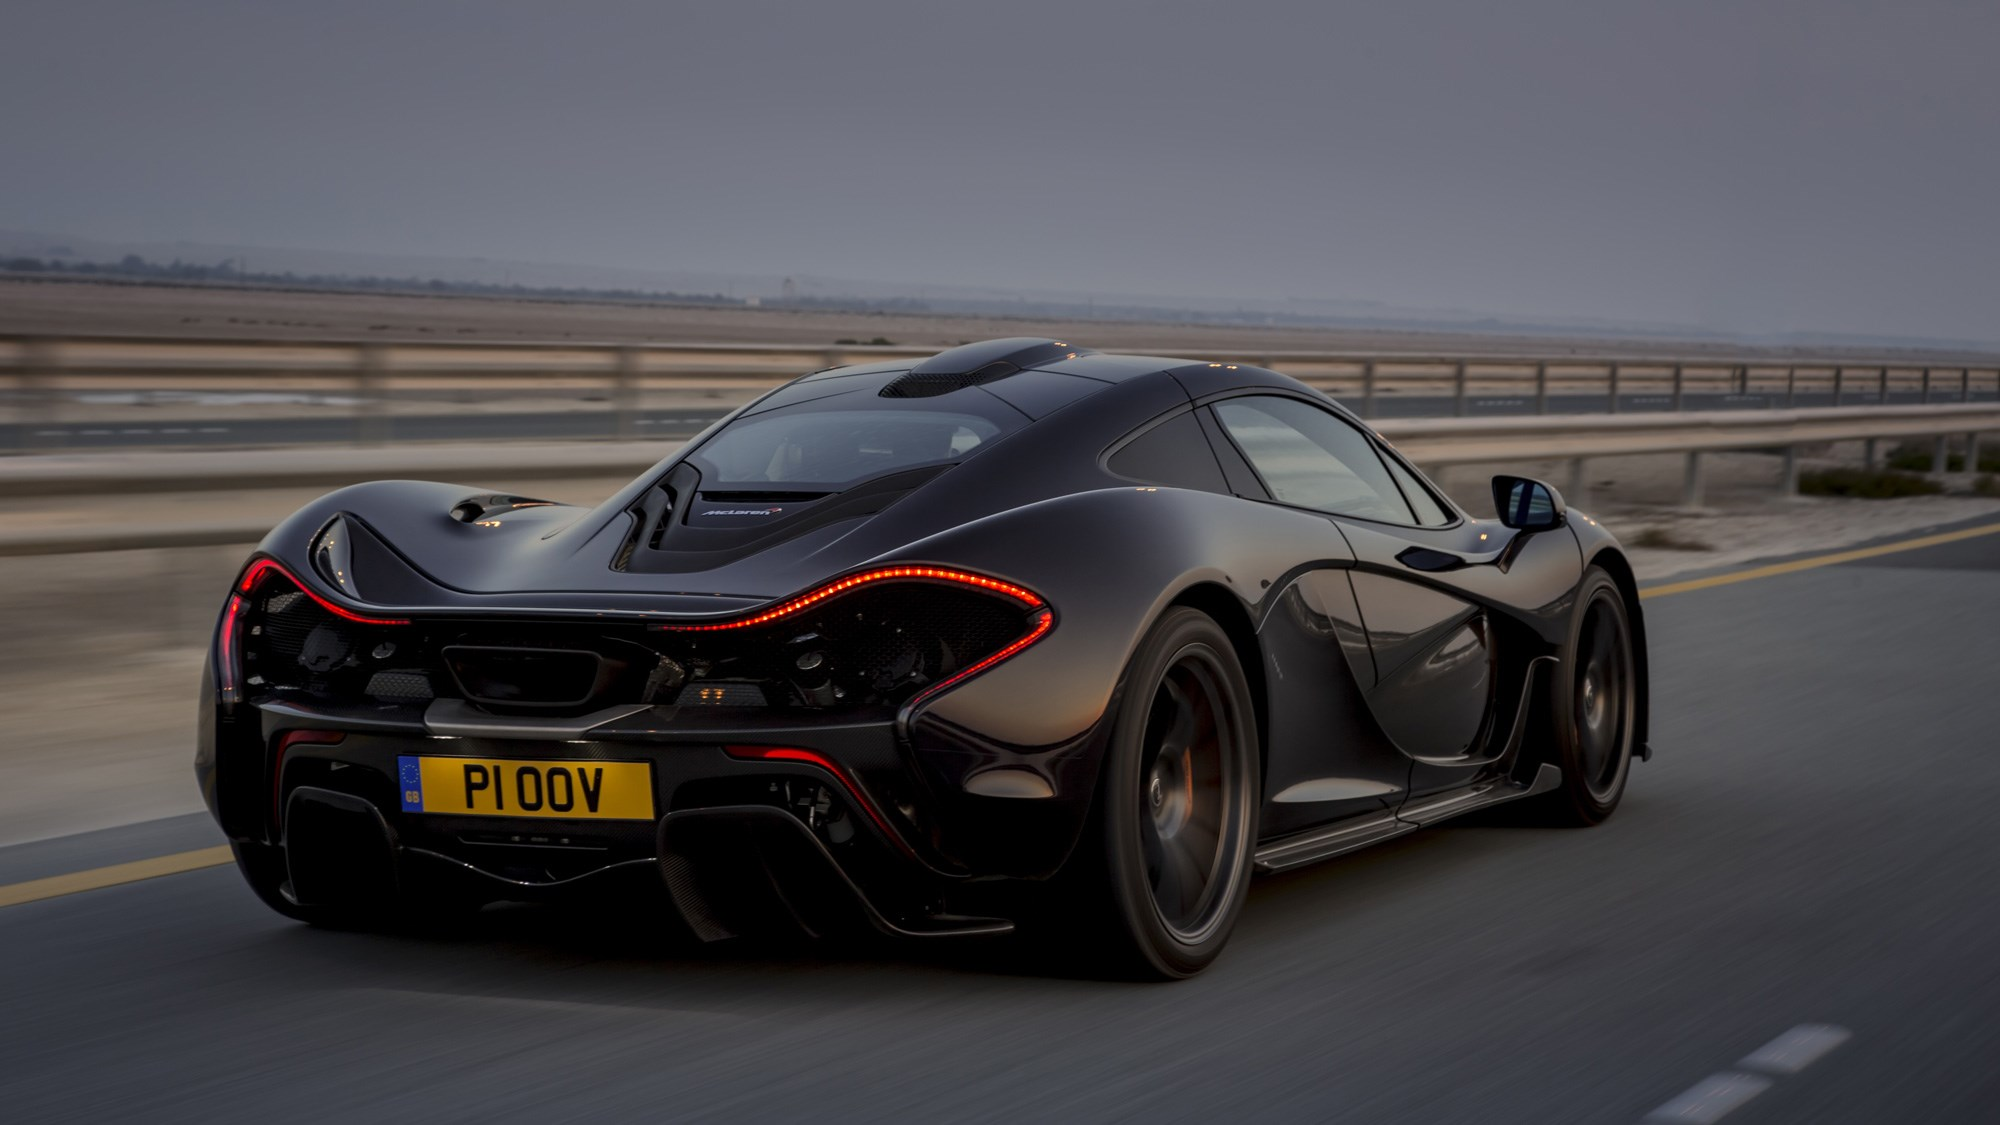 McLaren P1 review, Bahrain, black, rear view, driving on the road